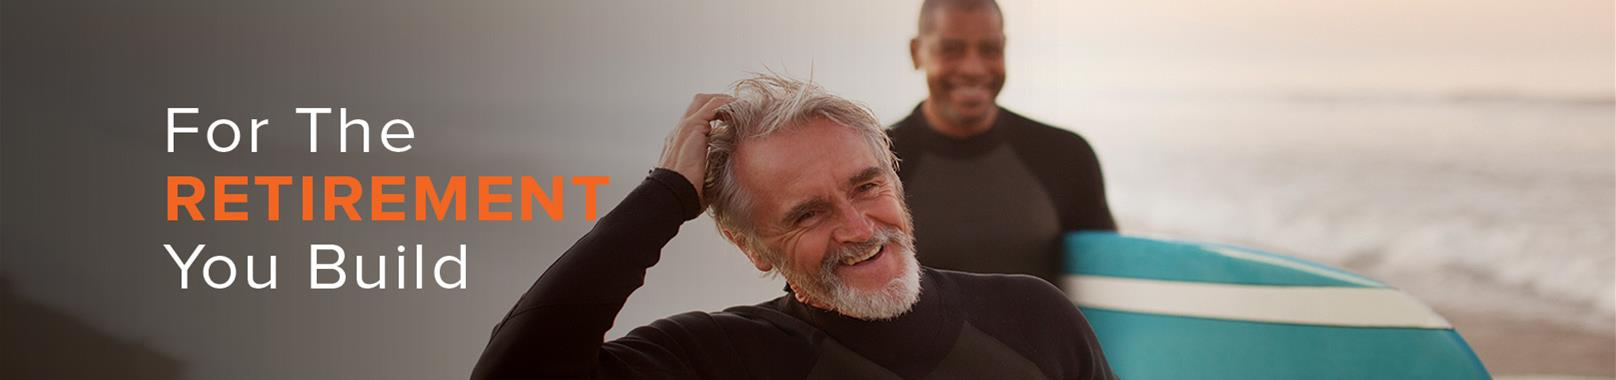 Nuvision Credit Union helps you save for active retirement